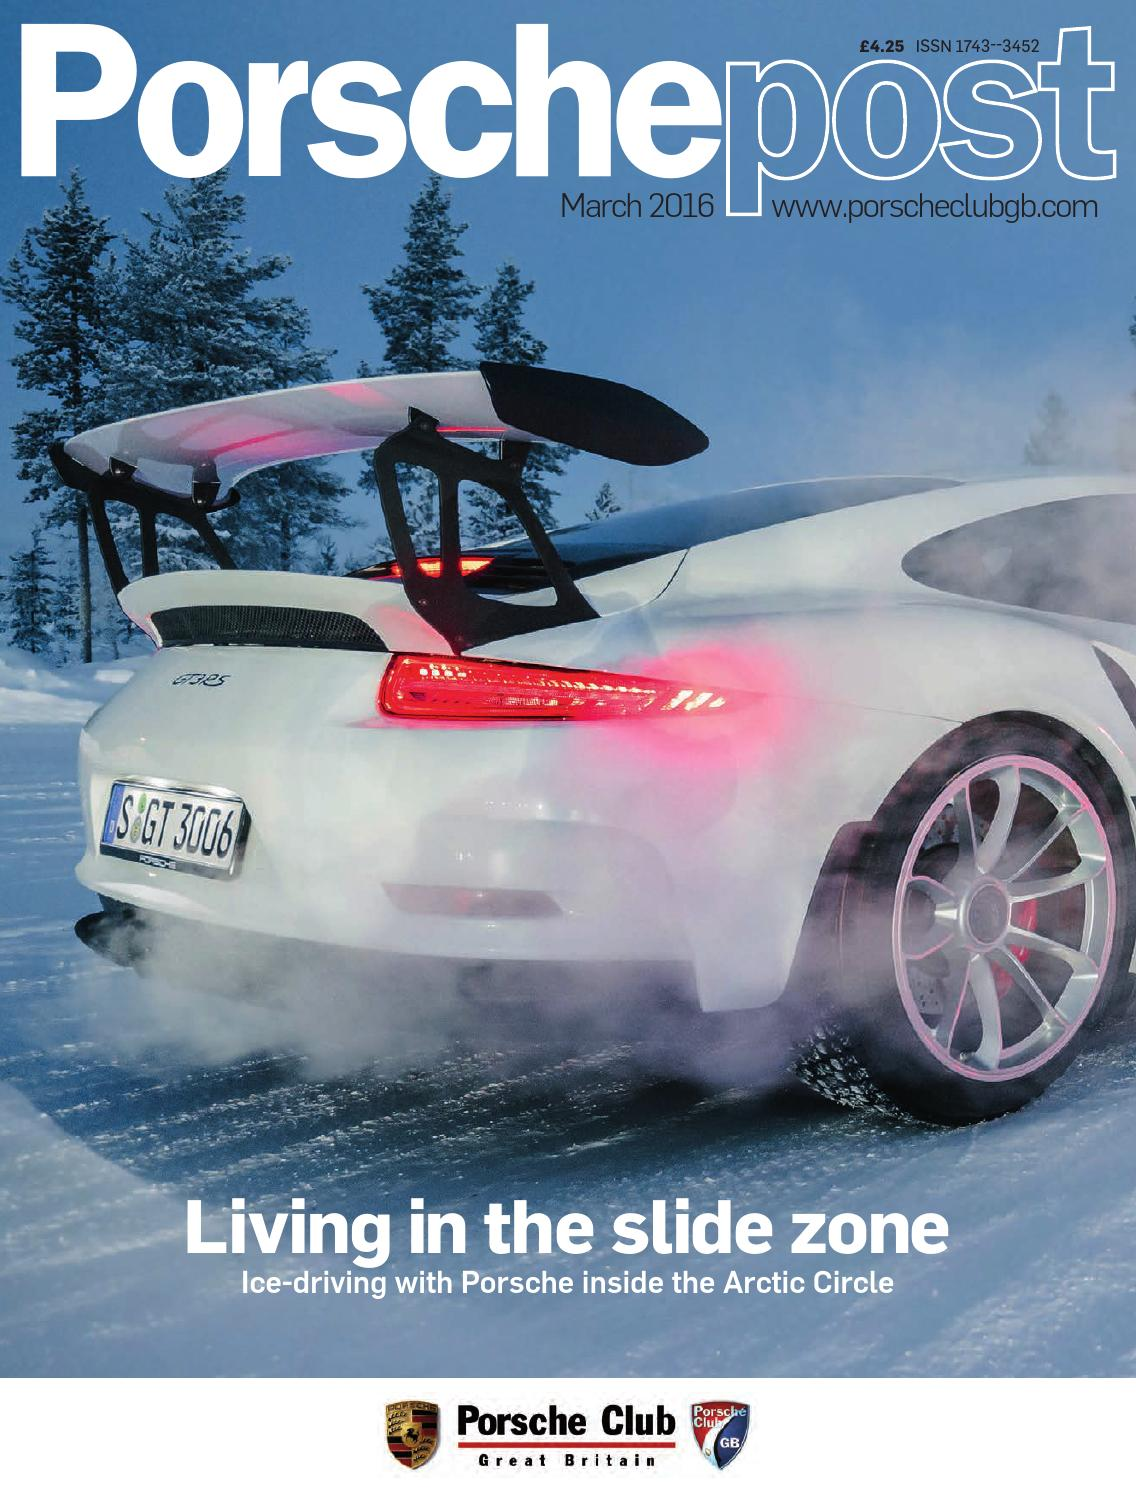 Porsche Post March 2016 By Club Great Britain Issuu Not Carrying The Gt4 Suspension Whether Disc Or Drum On Rear